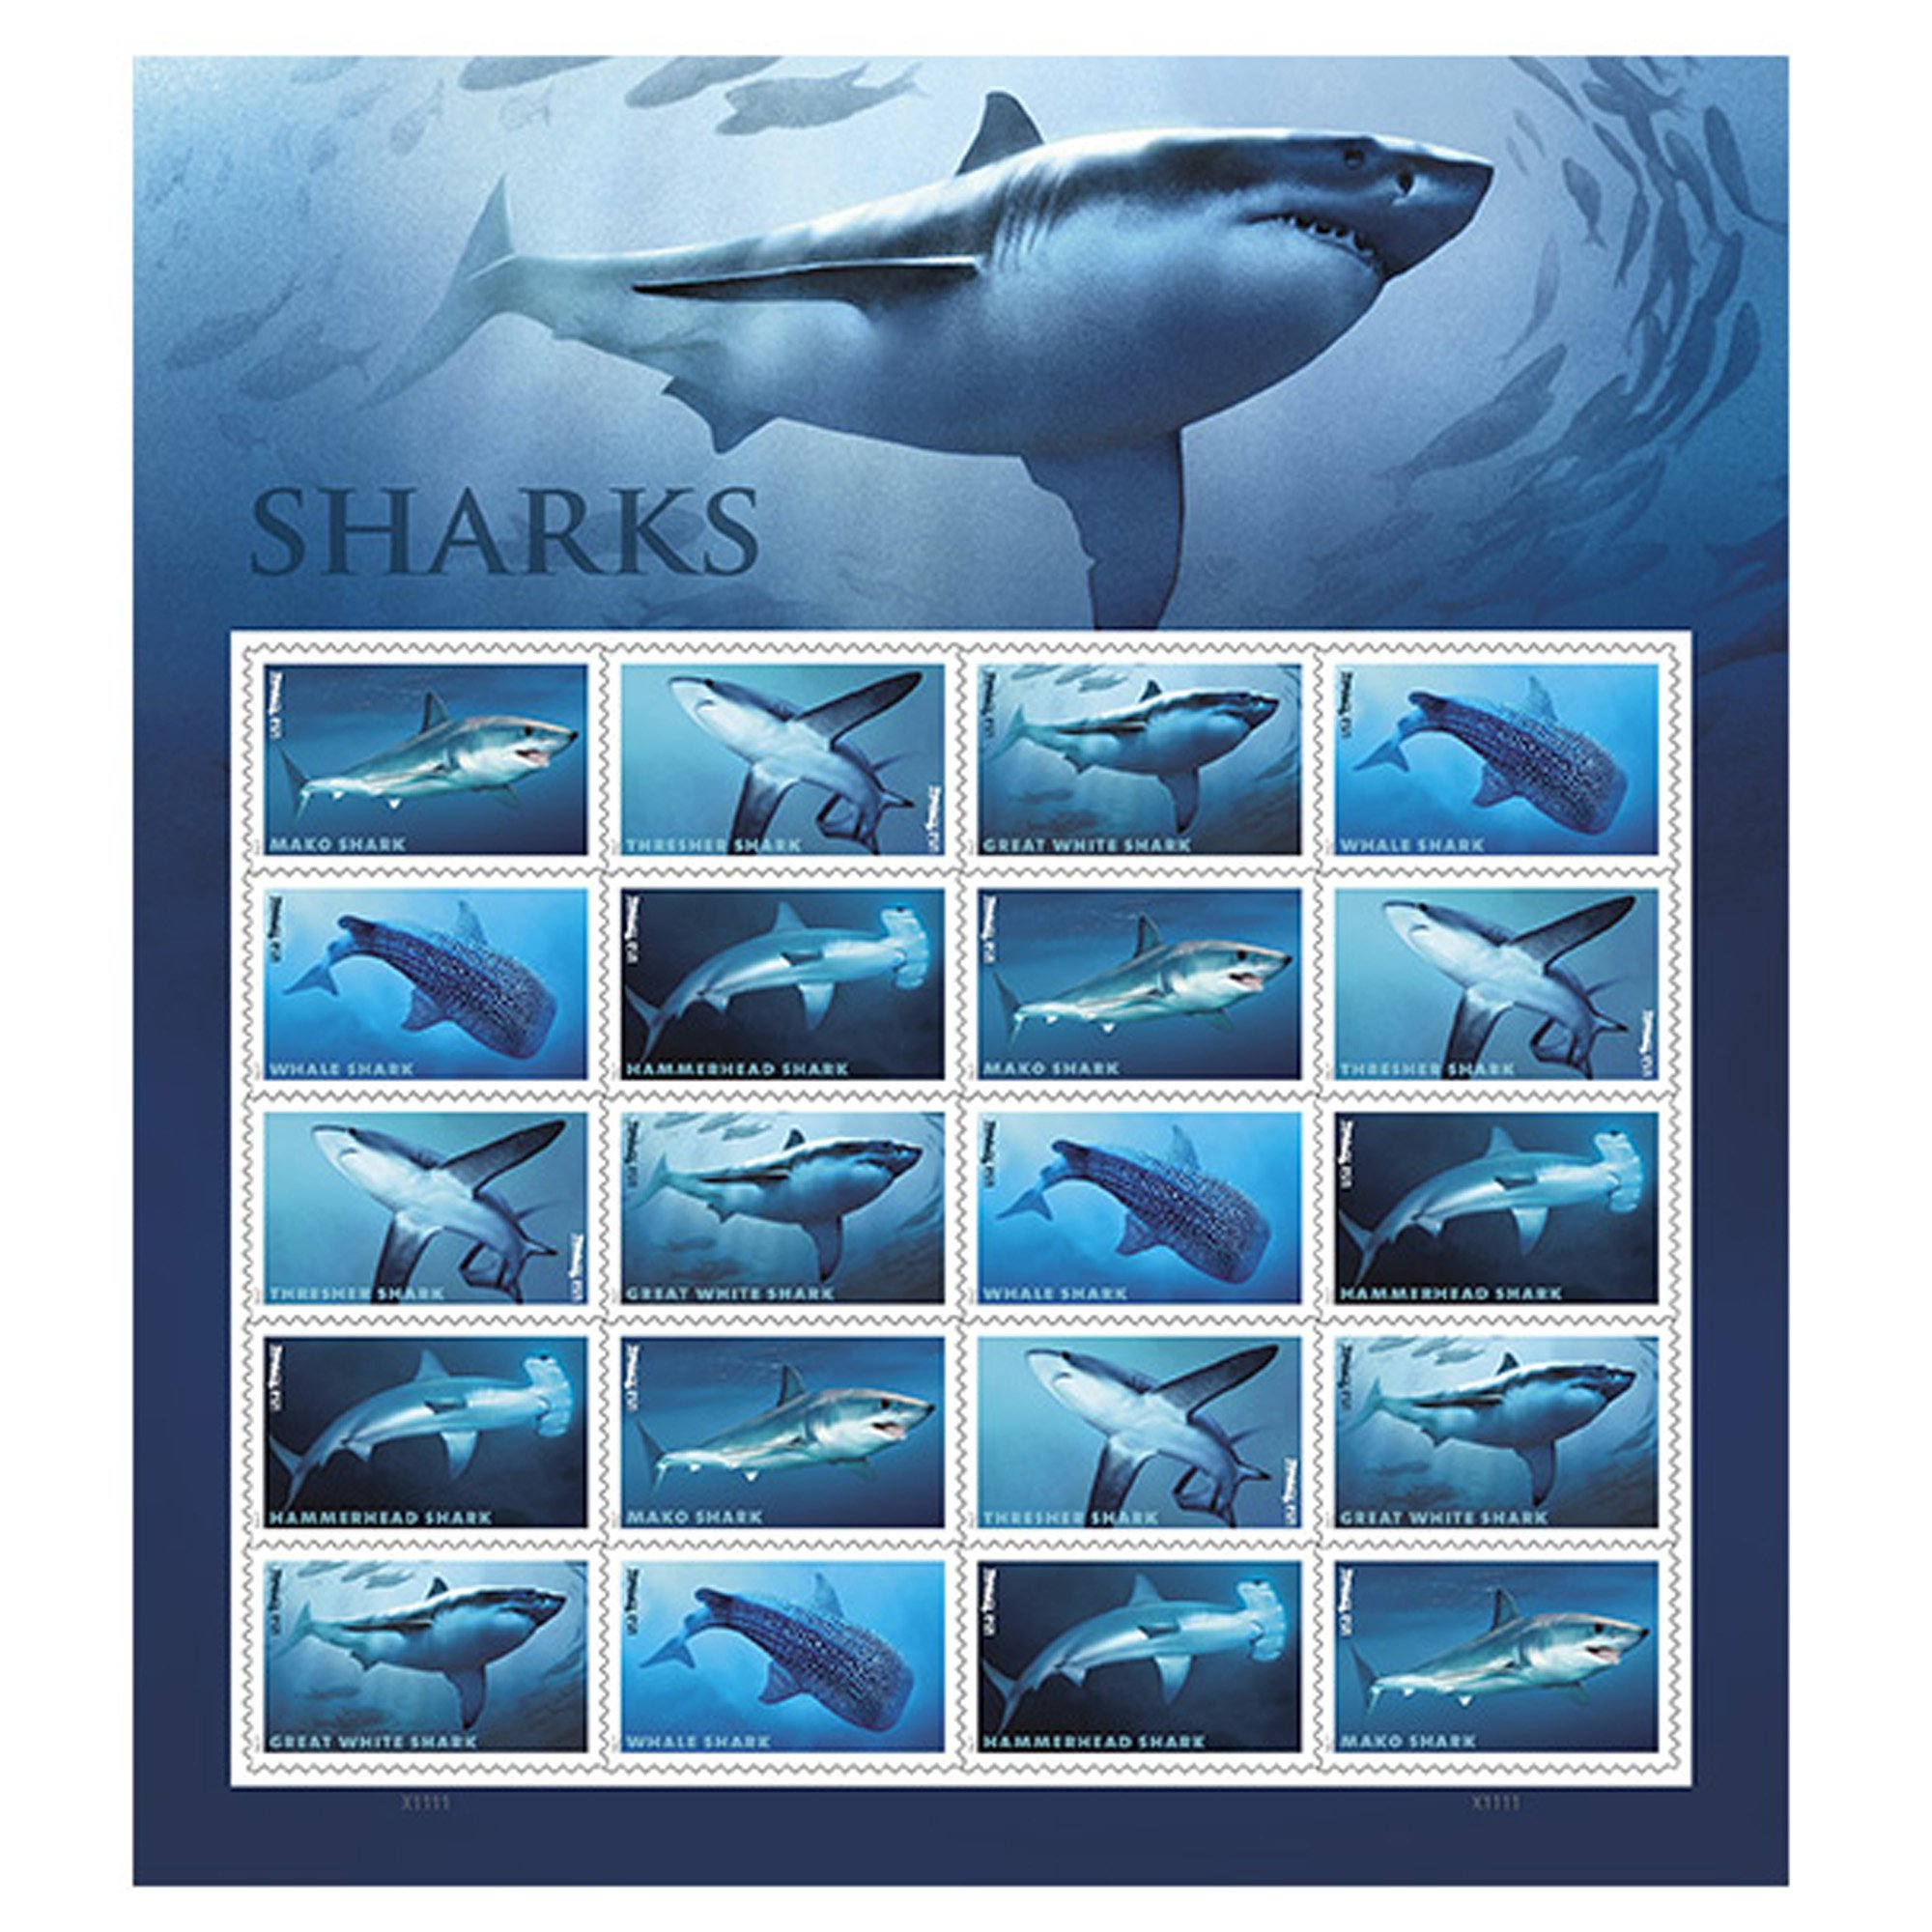 Shark Sheet of 20 Forever USPS First Class one Ounce Postage Stamps Ecotourism Conservation Preservation Ecology Nature